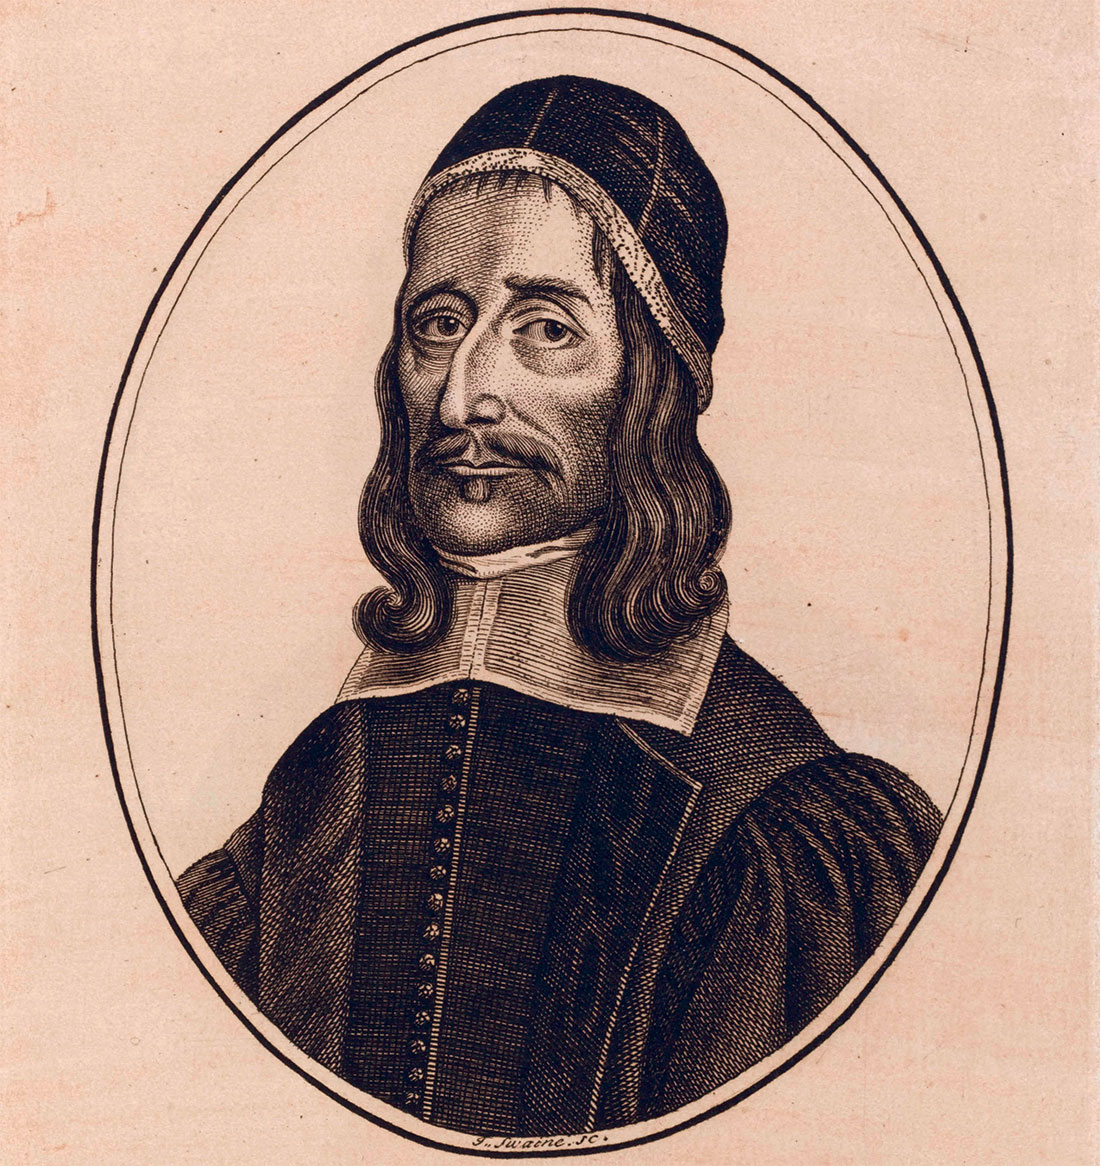 Prolix puritan: Richard Baxter, engraving on a 19th-century bookplate.